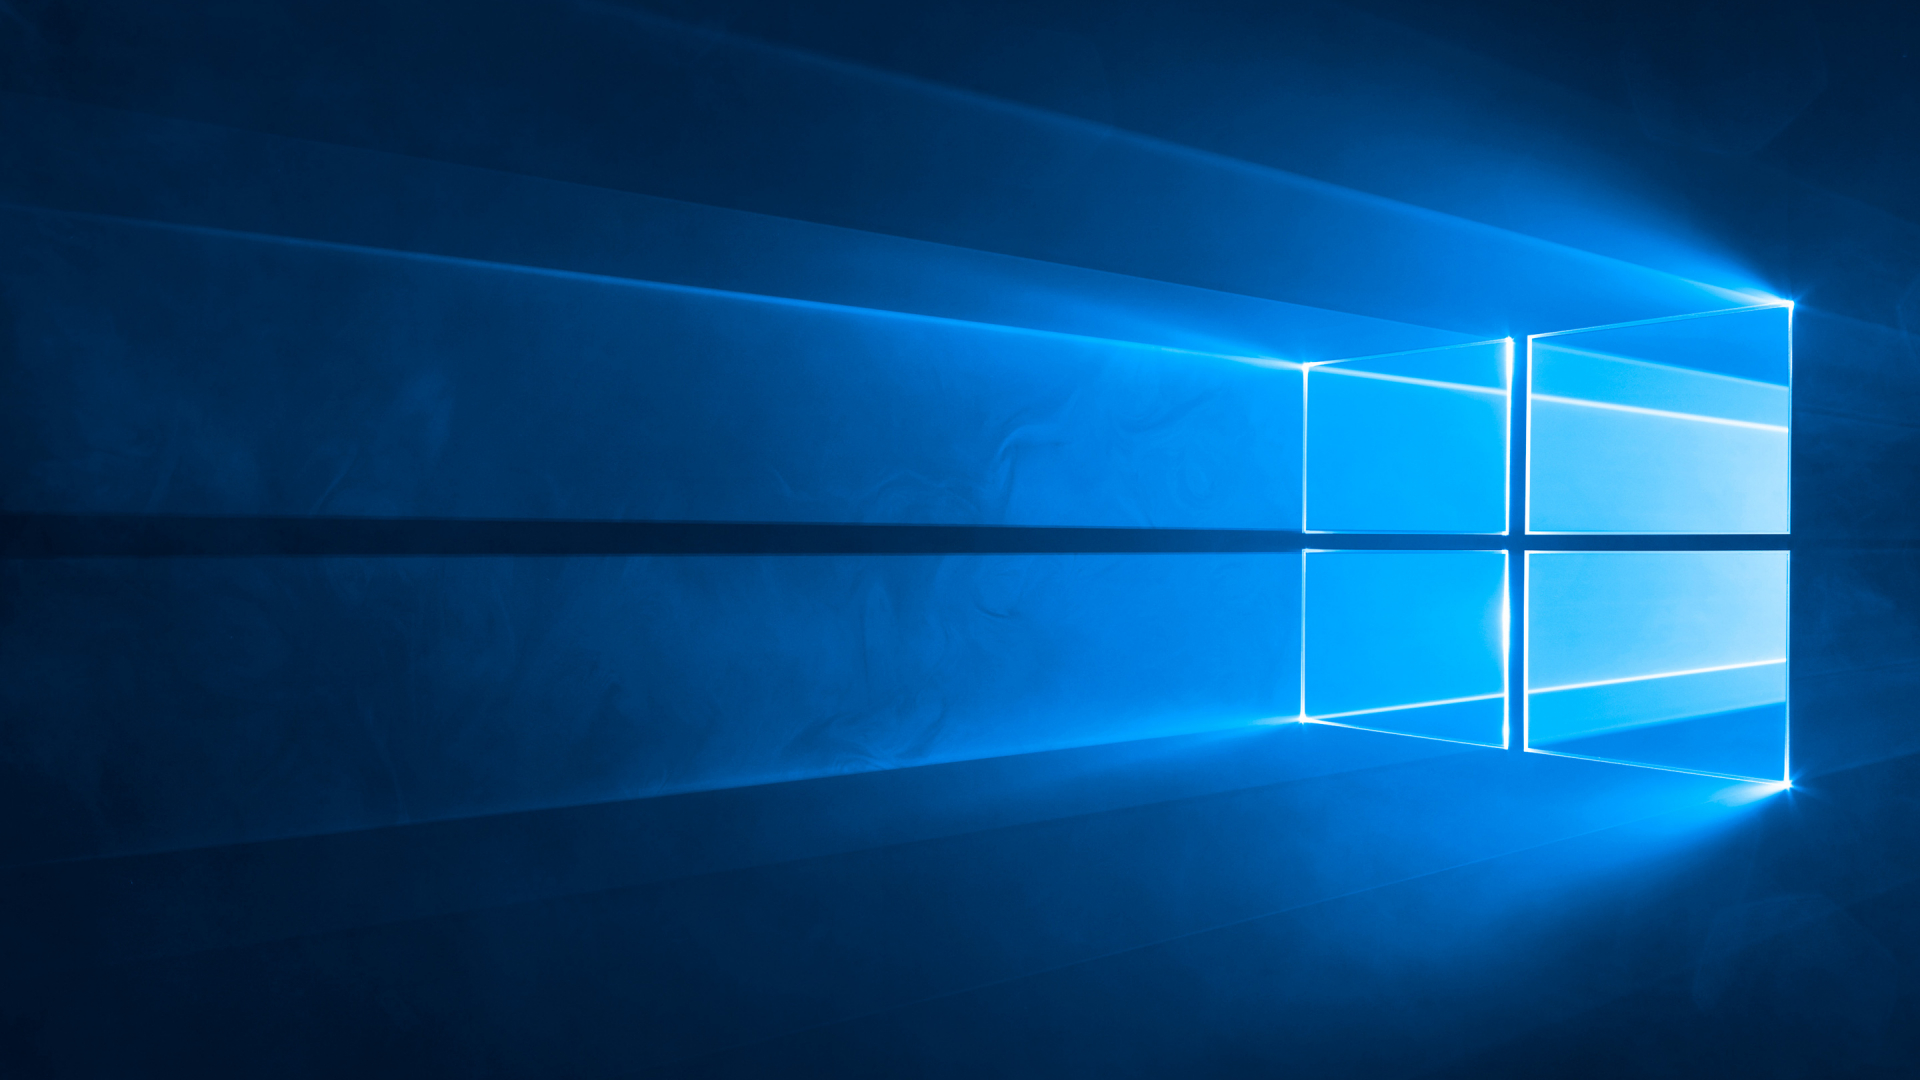 Get Windows 10 Wallpapers Hd Wallpapers 2880x1800 For Your